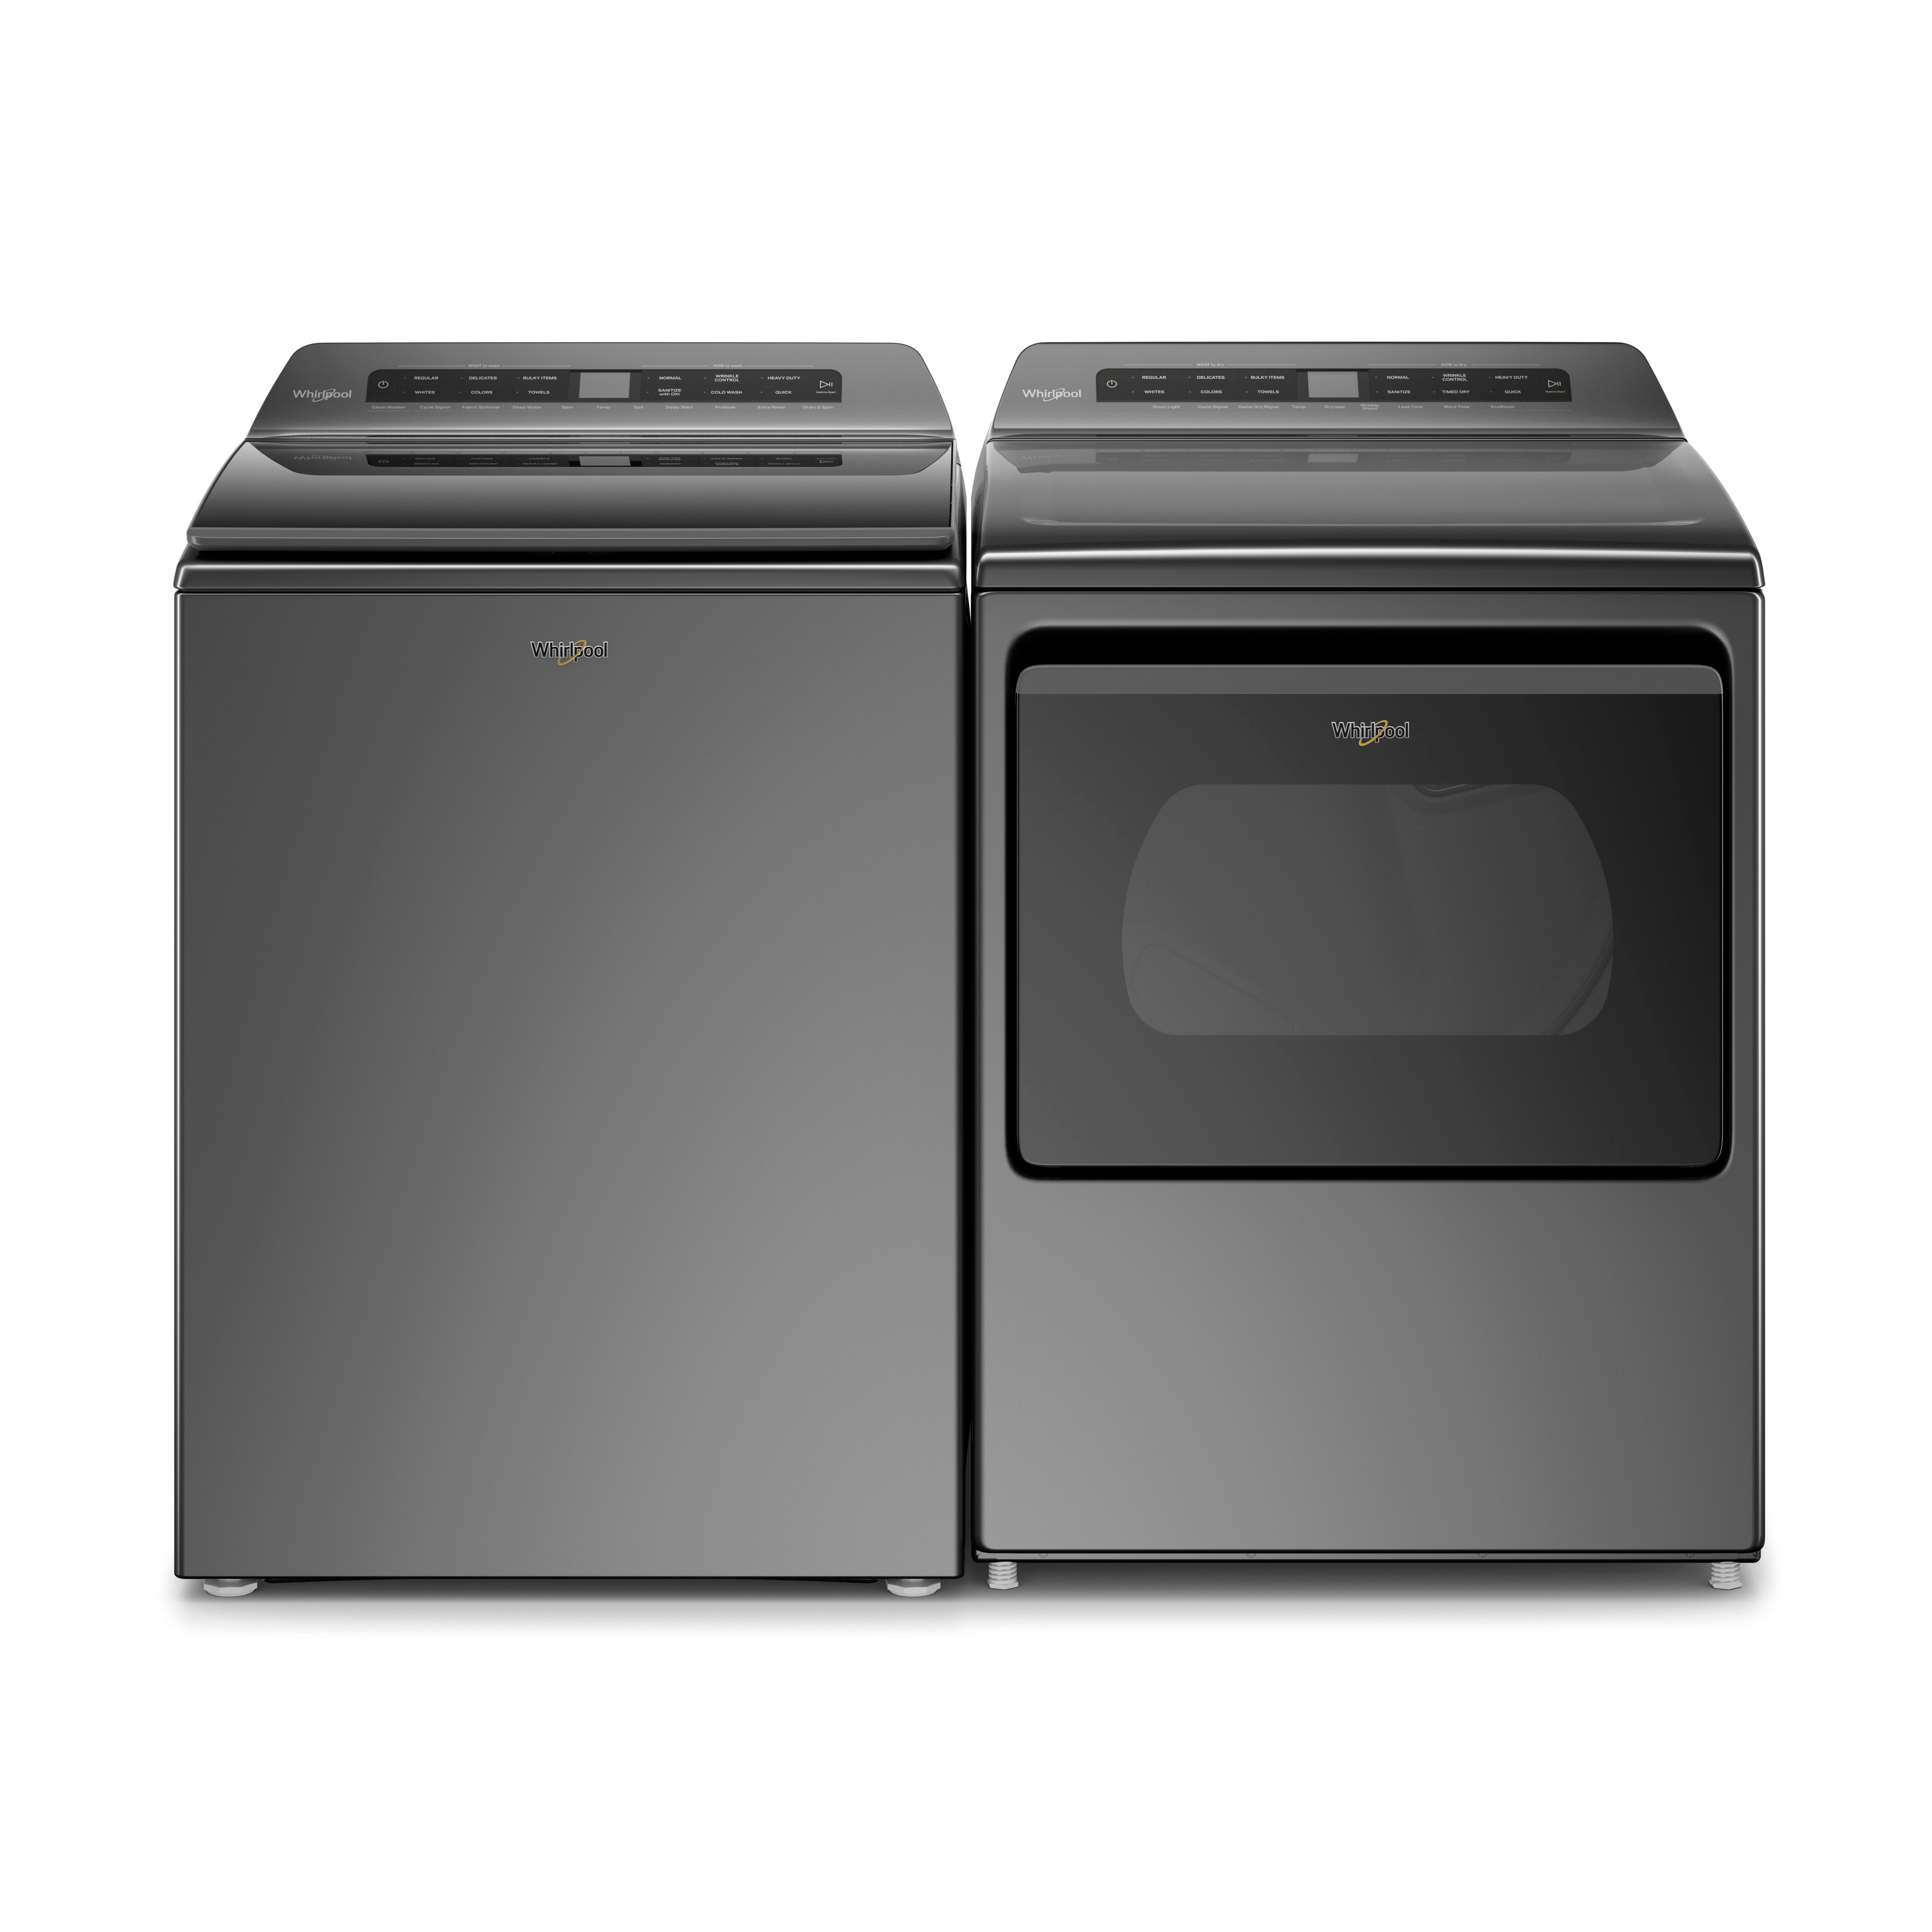 Whirlpool Chrome Shadow 4.8 Cu. Ft. Top Load Washer and 7.4 Cu. Ft. Electric Dryer